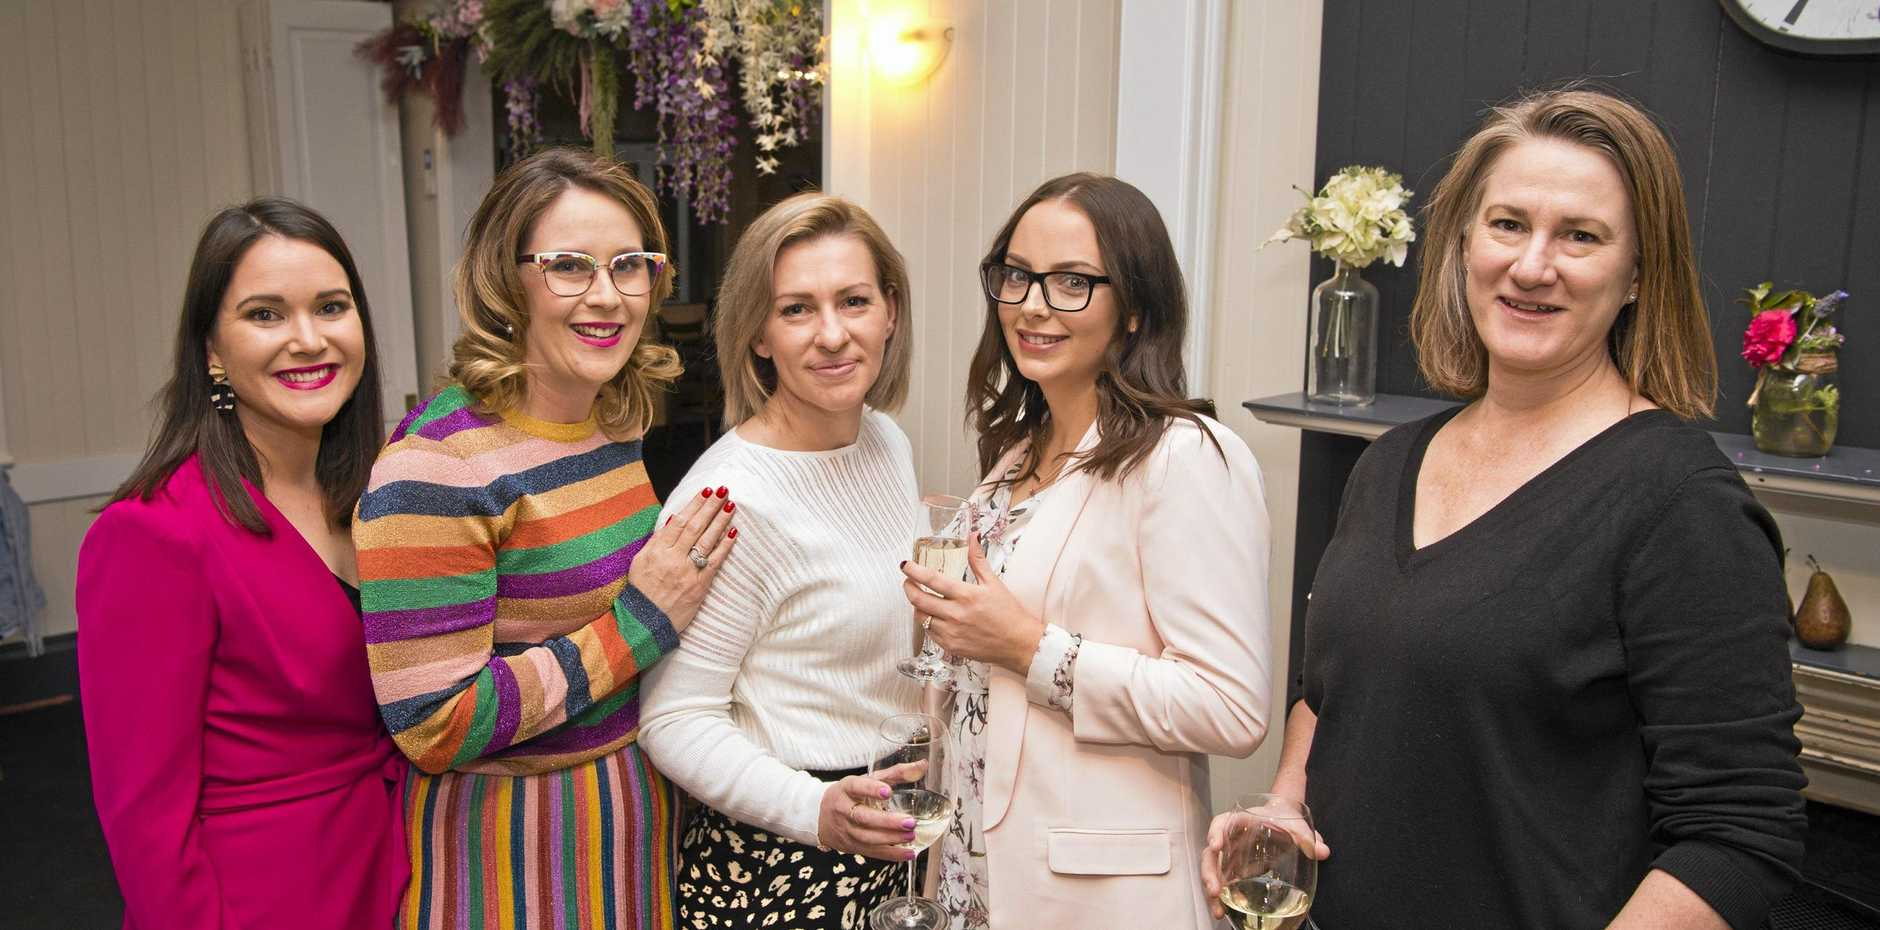 At the Wondrous Women dinner are (from left) organiser Jessica Ritchie, Danielle Brown, Petrina Schulz, Christina Douglas and Jacqui Eather at Urban Grounds Cafe, Friday, August 9, 2019.